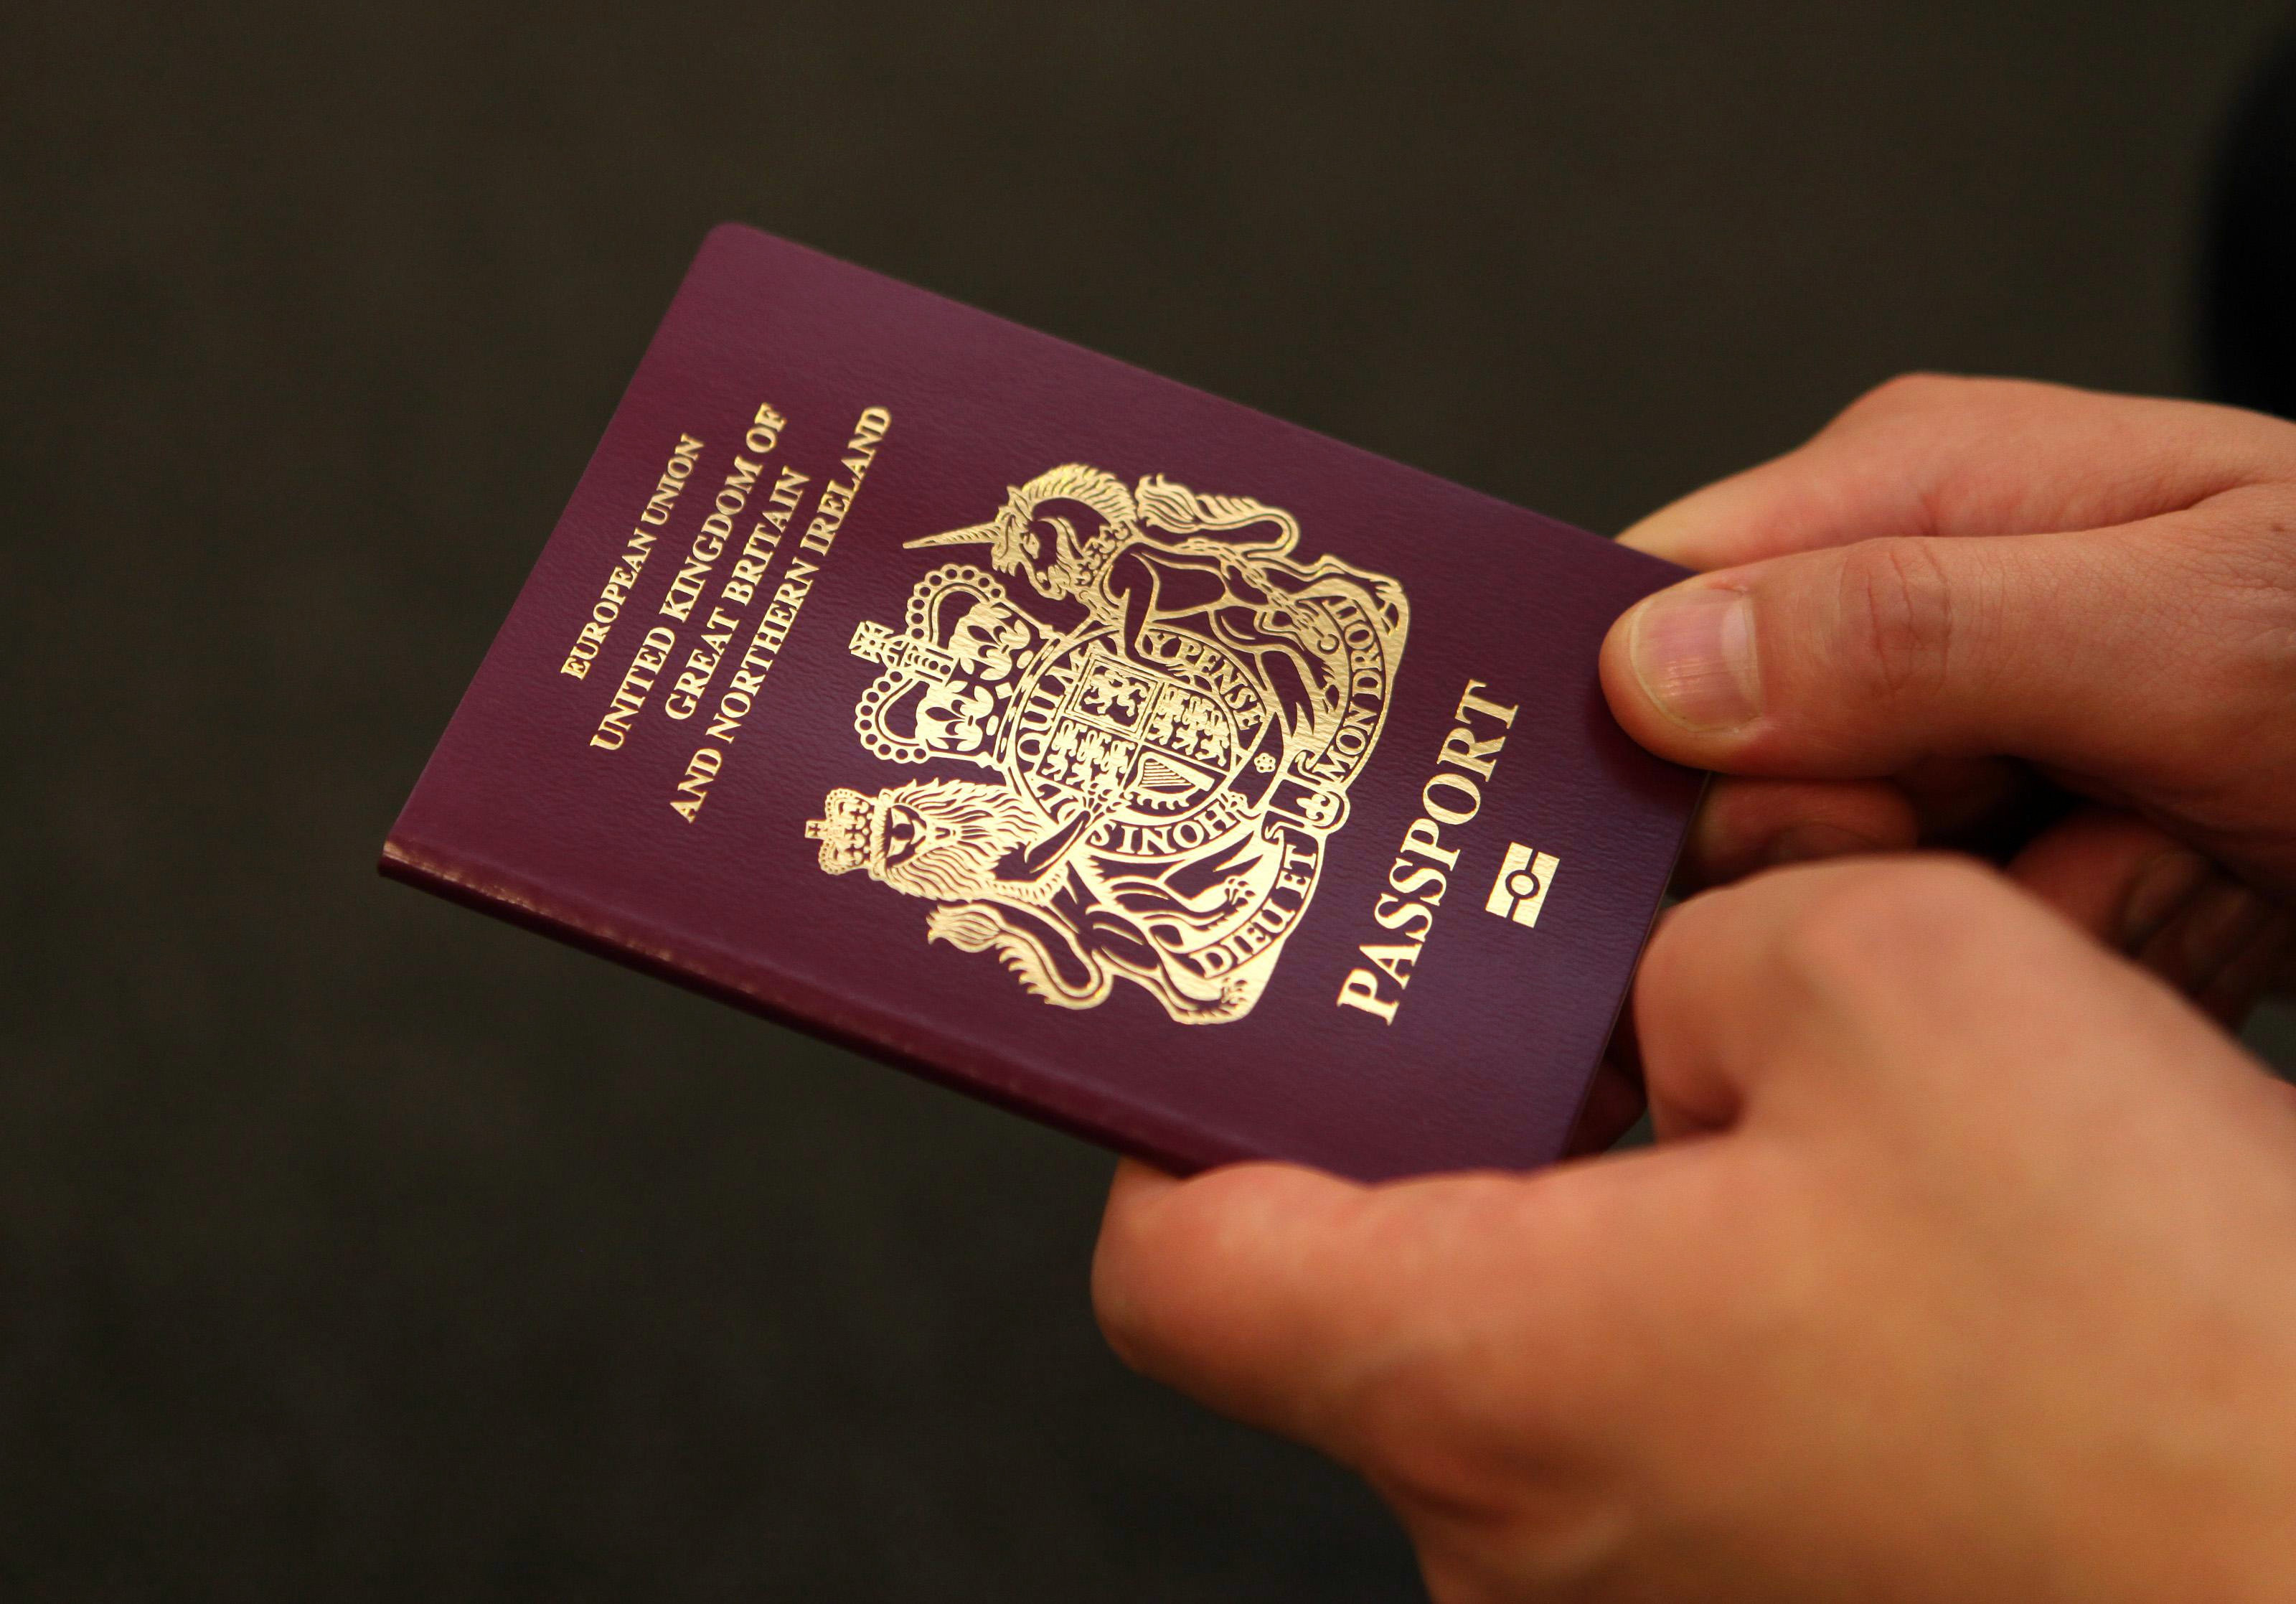 """File photo dated 08/10/10 of a passport, as patients could be required to show their passports at hospitals under new government guidelines to tackle health tourism, according to a report. PRESS ASSOCIATION Photo. Issue date: Monday April 13, 2015. The Department of Health (DoH) issued guidance to hospitals in which it said services has a """"legal obligation"""" to ensure patients are entitled to free healthcare, the Daily Mail reported. See PA story HEALTH Passport. Photo credit should read: Katie Collins/PA Wire"""